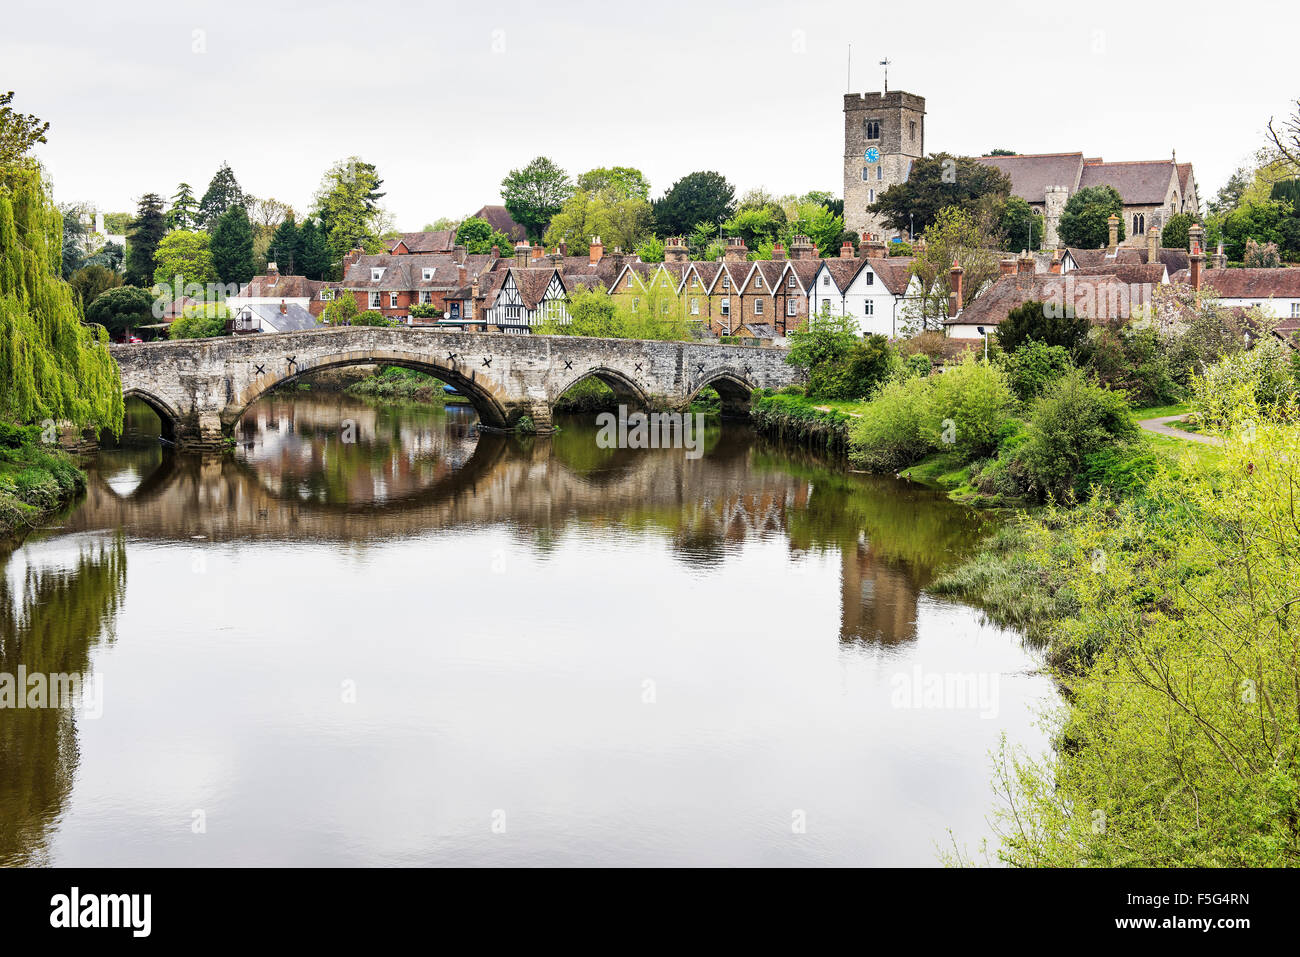 Aylesford and the river Medway - Stock Image